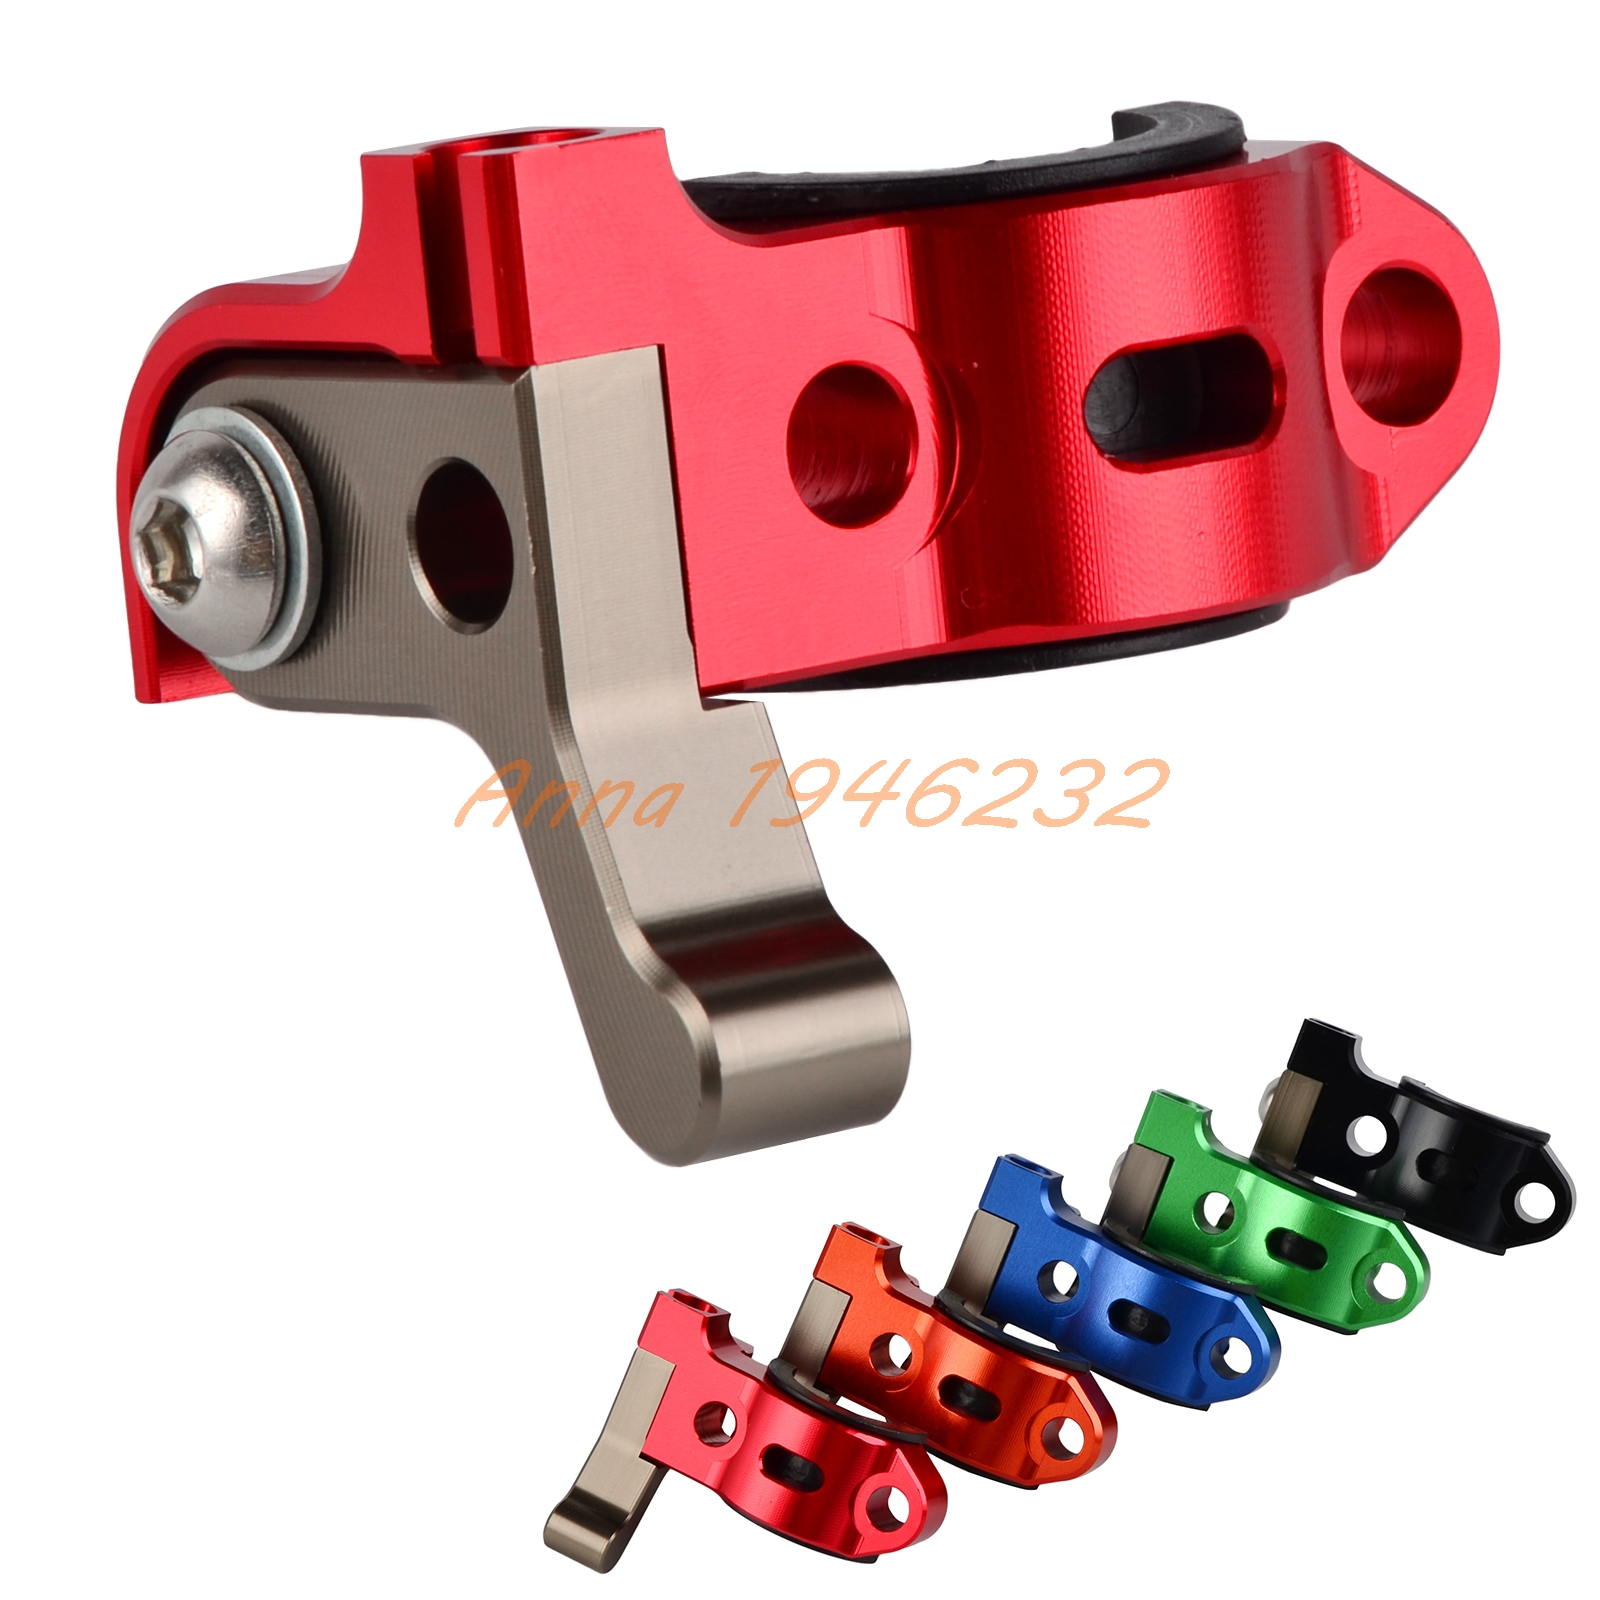 Rotating Bar Clamp Hot Start Lever For Honda CR 125 250 500 80 85R CRF150F/R CRF230F 250R/X 450R/X XR250R/L XR 400 600R XR650R/L